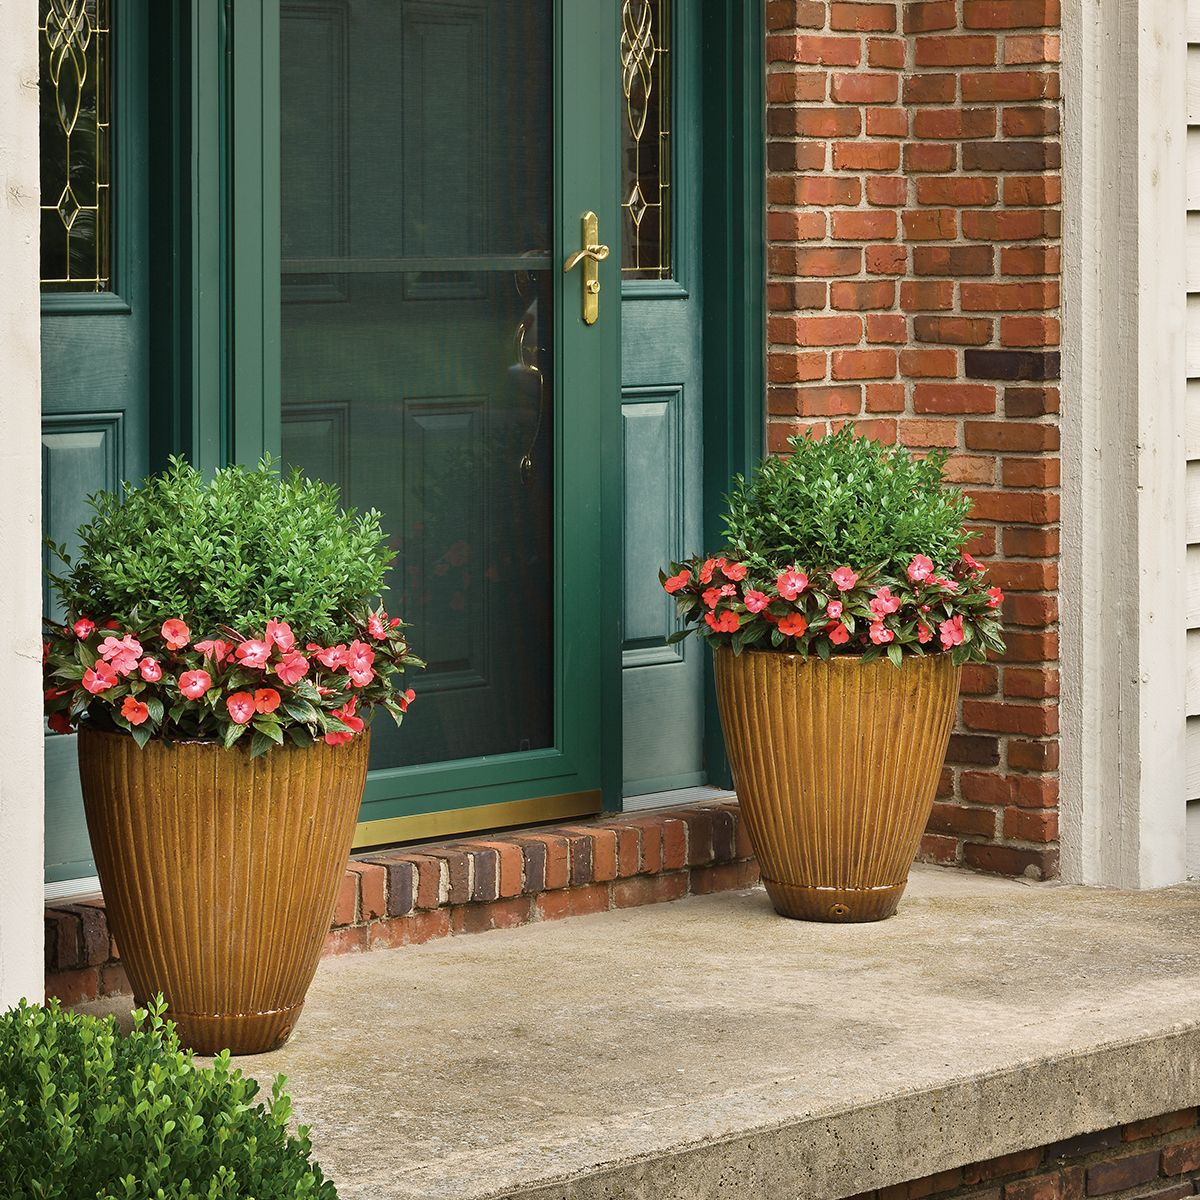 Using An Evergreen Such As North Star Buxus In Your Porch Pots Is An Easy Low Maintenance Solution Shade Plants Container Fall Container Gardens Porch Plants